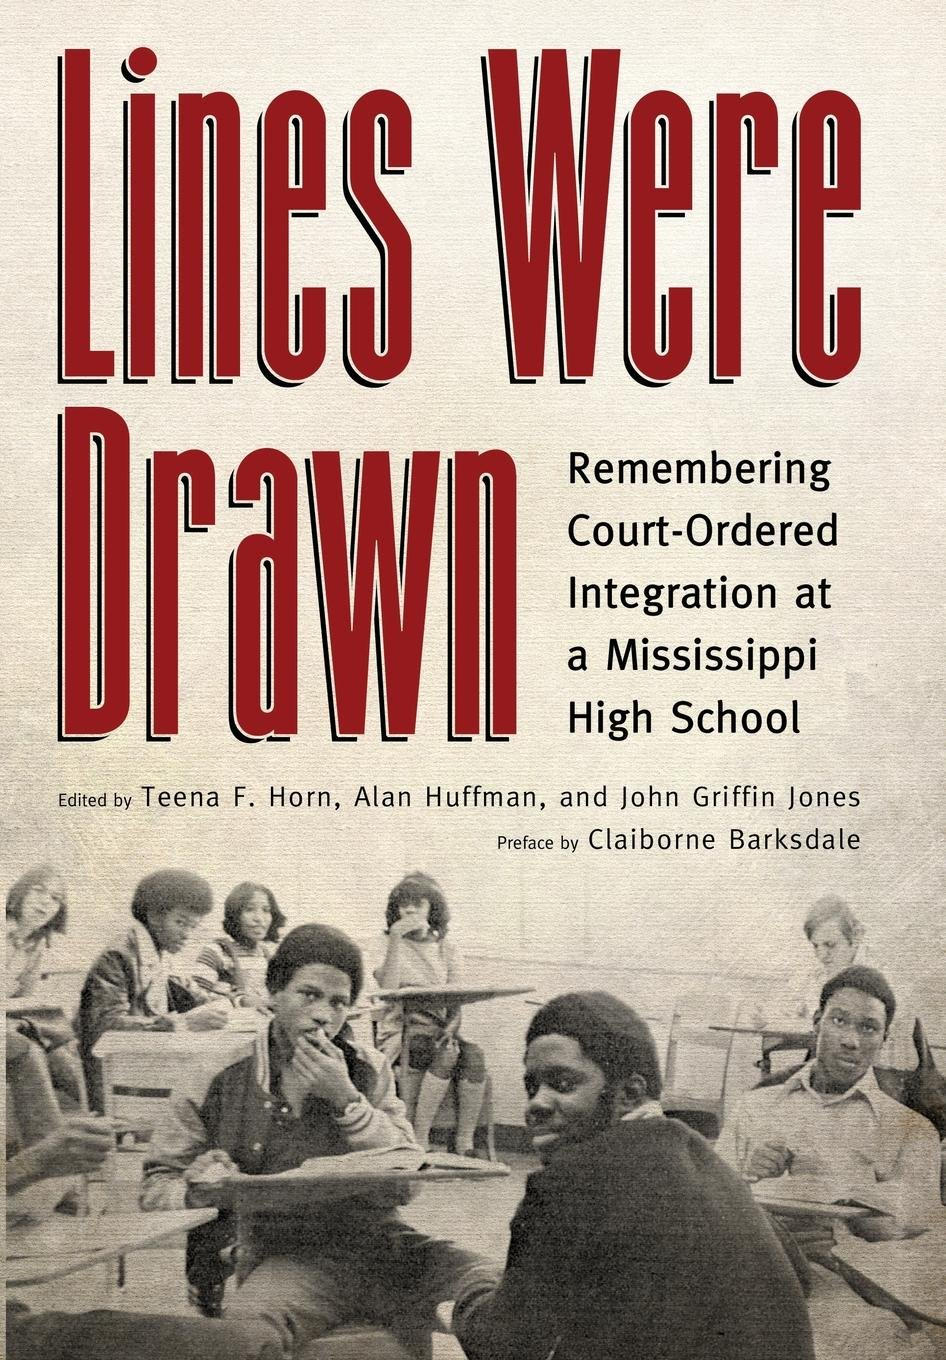 Lines Were Drawn: Remembering Court-Ordered Integration at a Mississippi High School pdf